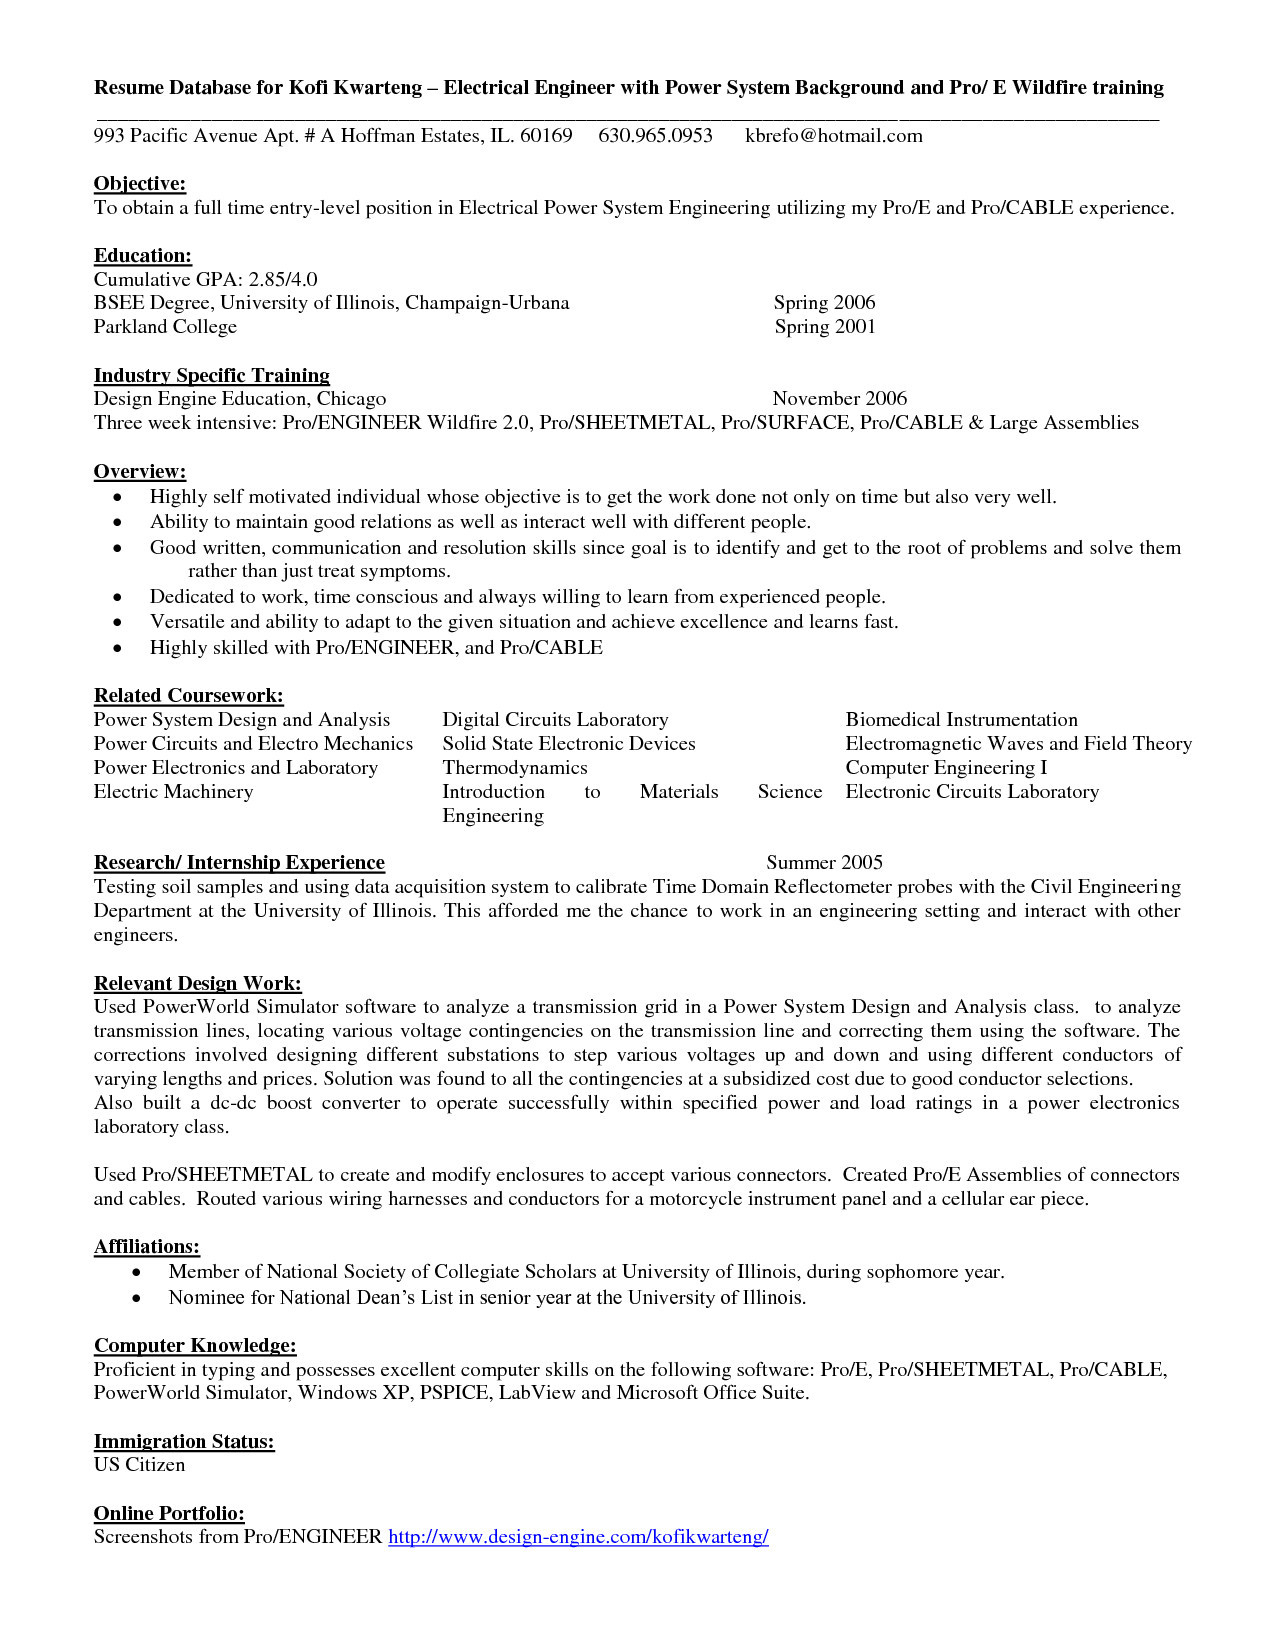 Resume for Entry Level Electrical Engineer - Electrical Engineer Resume Word format Sample Pdf Sample Resume for